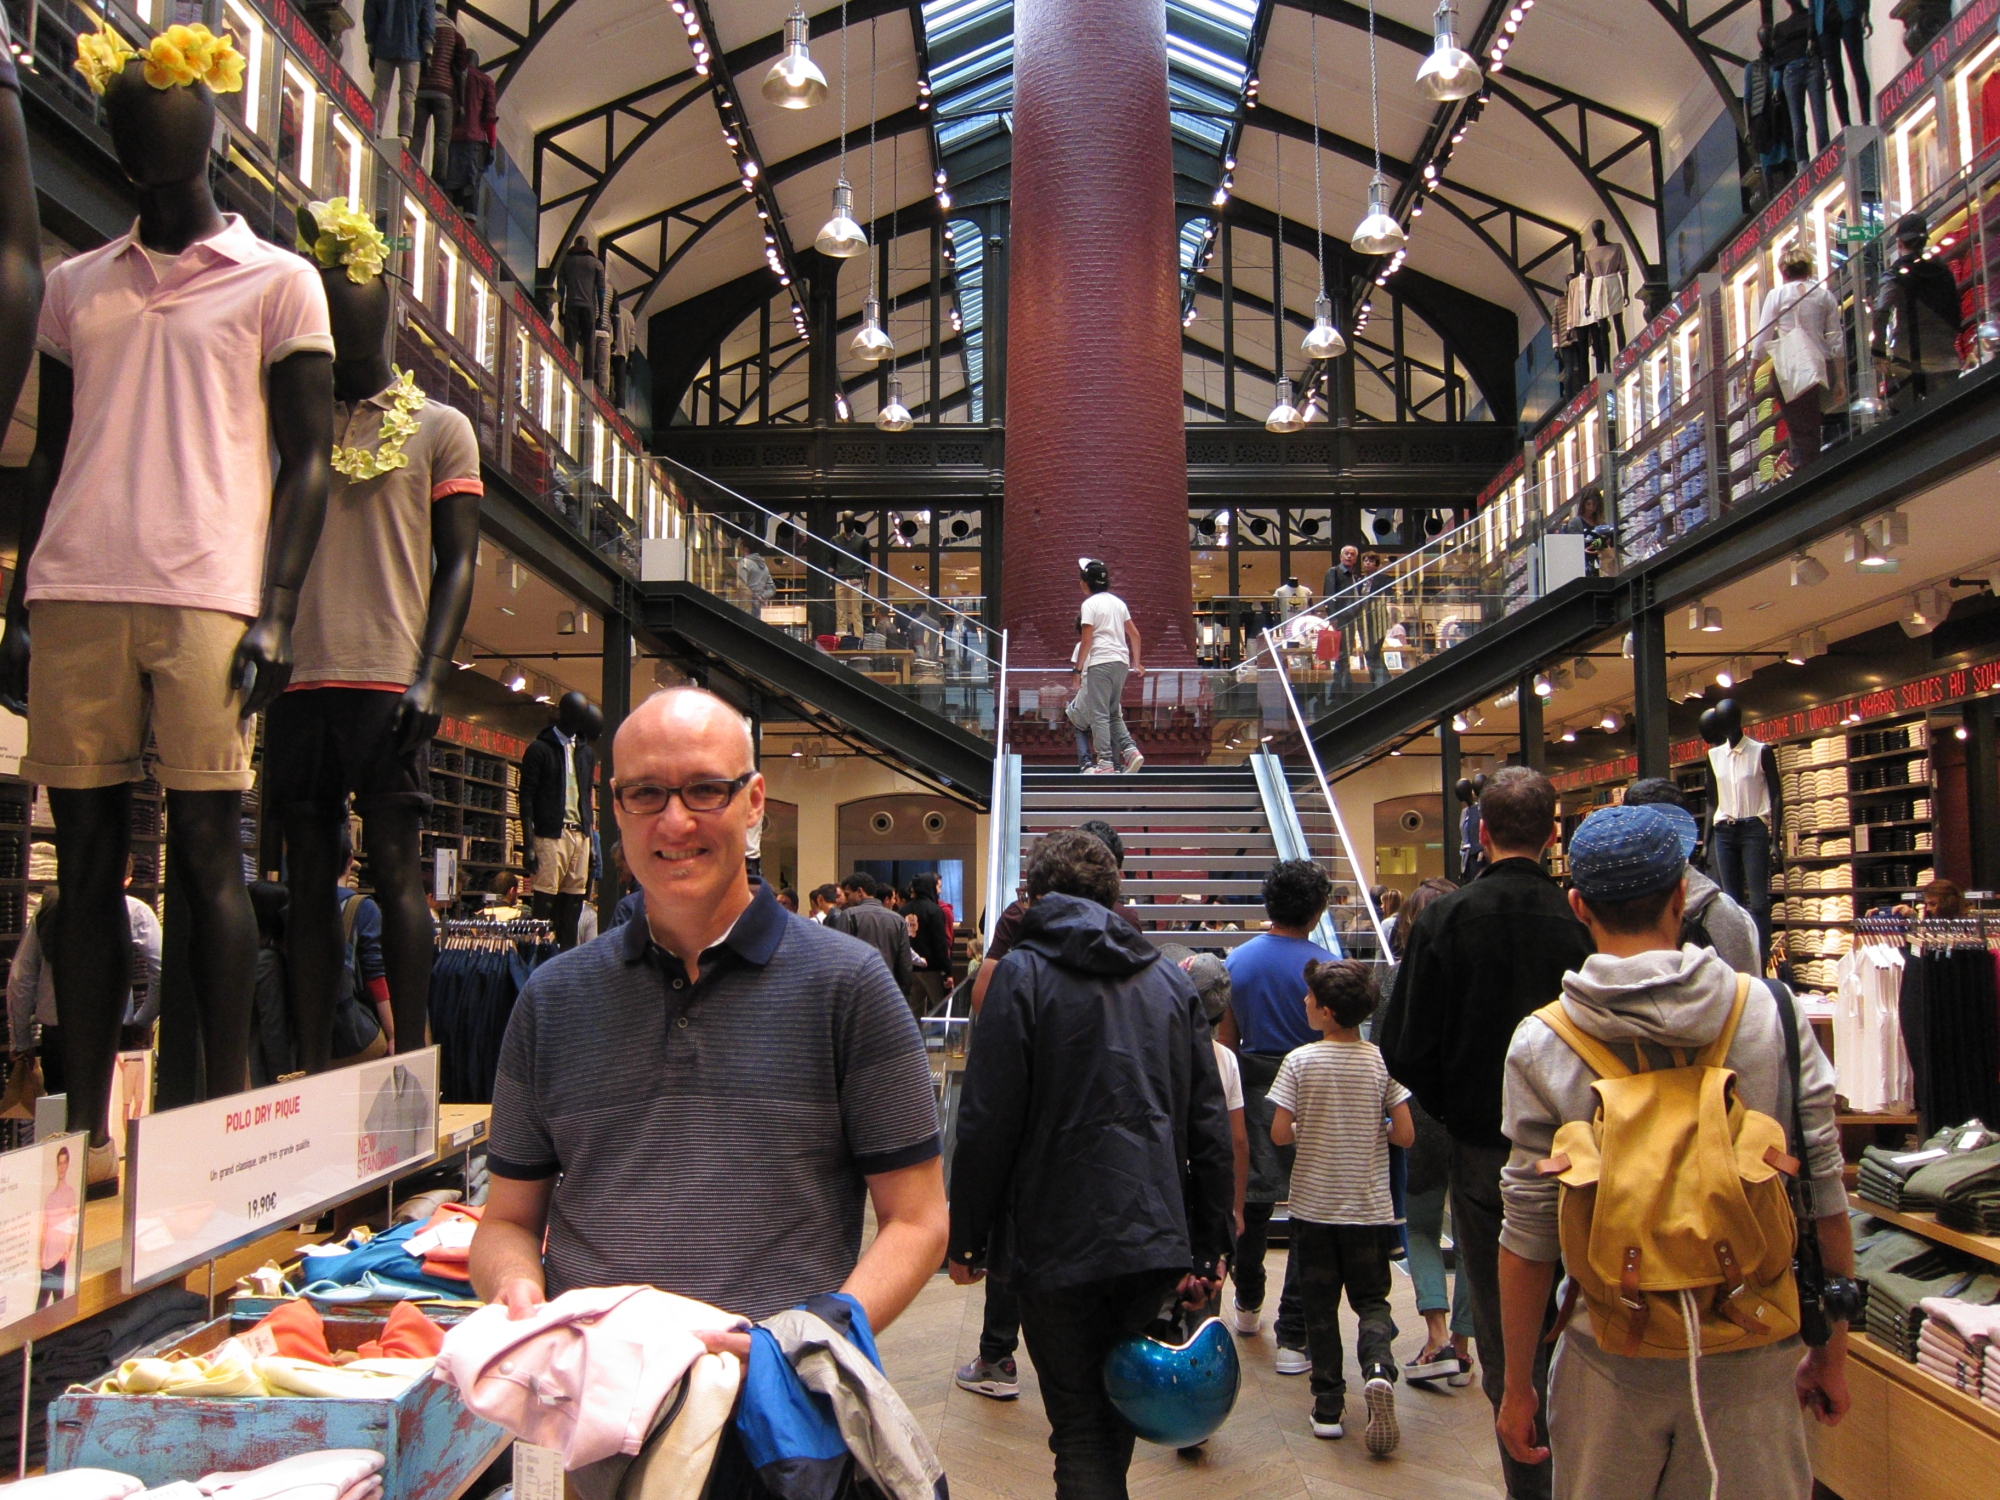 Jaime enjoying the new Uniqlo store in a former factory in the Marais.